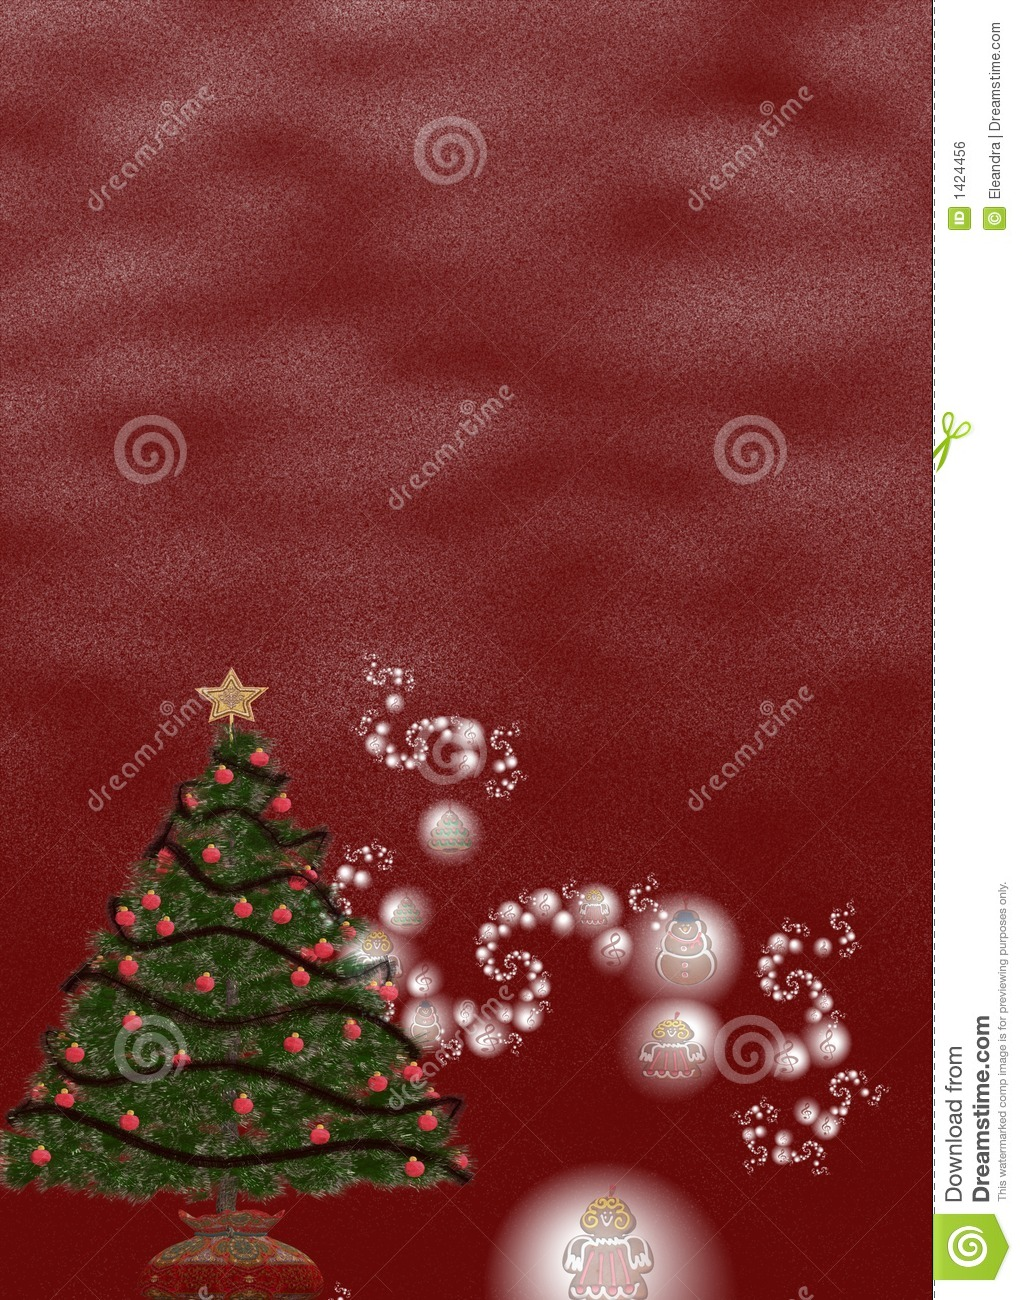 Christmas Background II